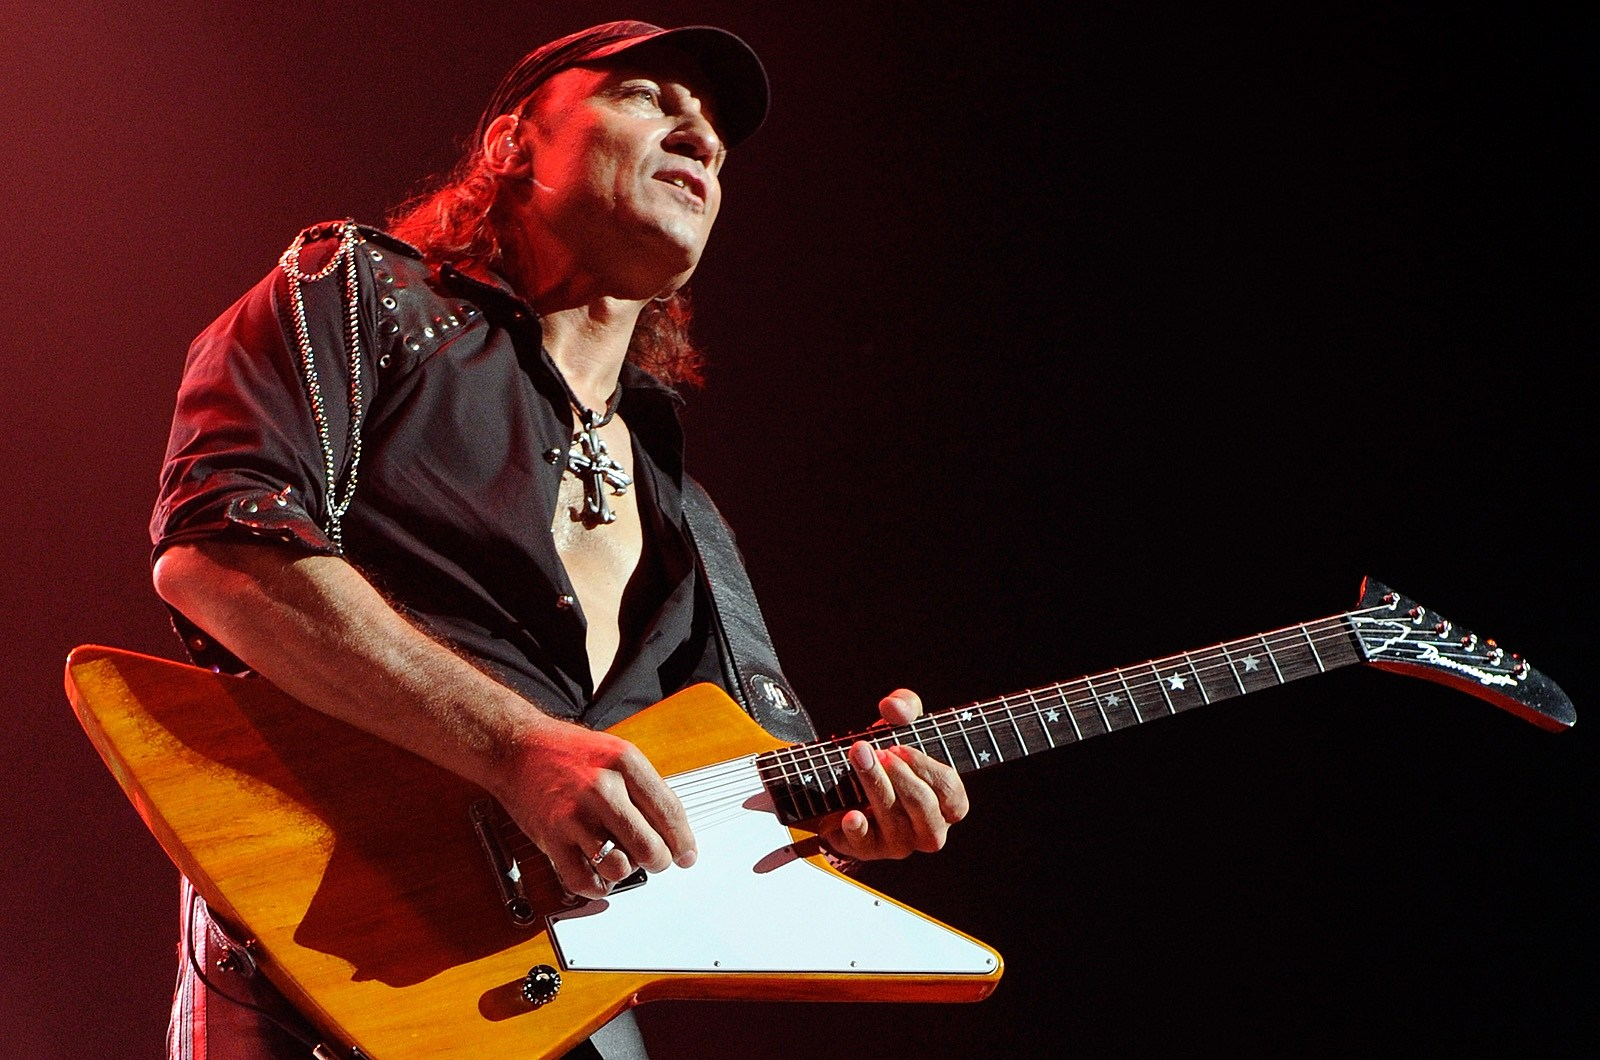 Scorpions And Cinderella Perform At The Thomas & Mack Center